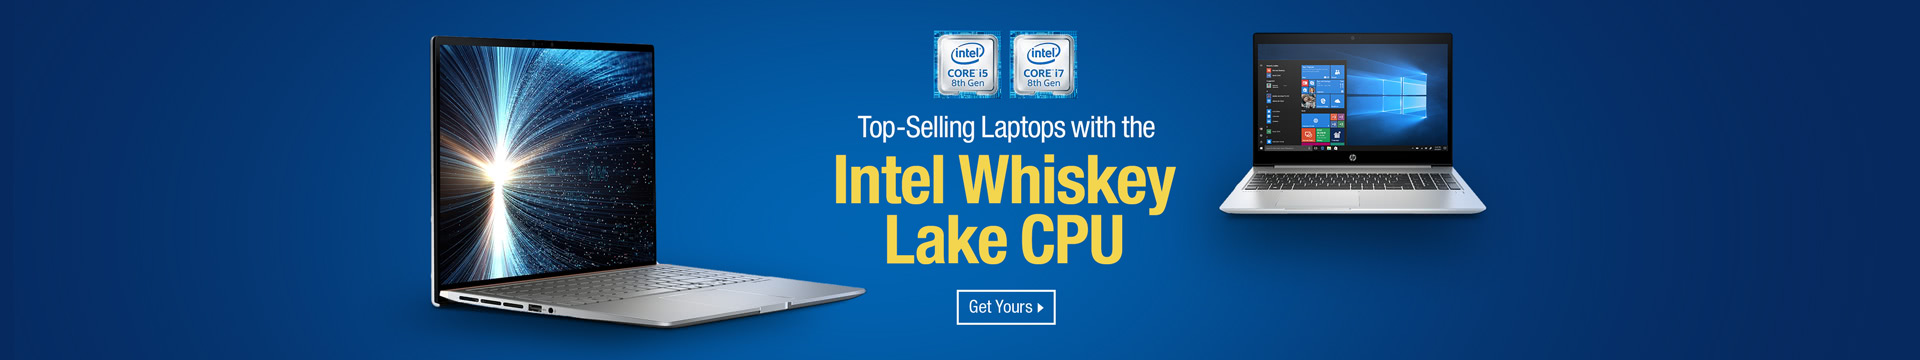 Top Selling Laptops with the Intel Whiskey